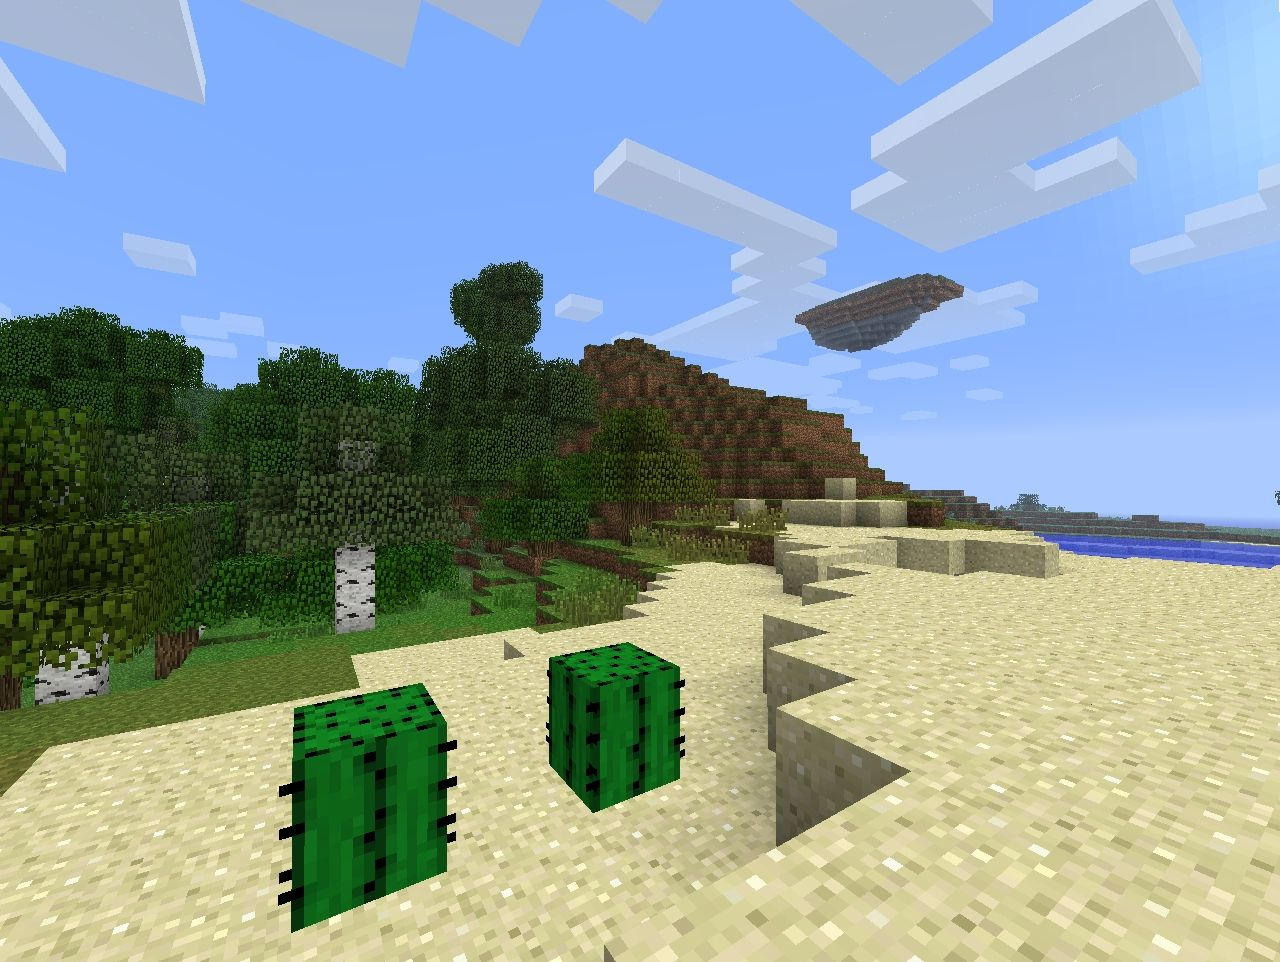 2 blocks of cactus and the island on the left from spawn